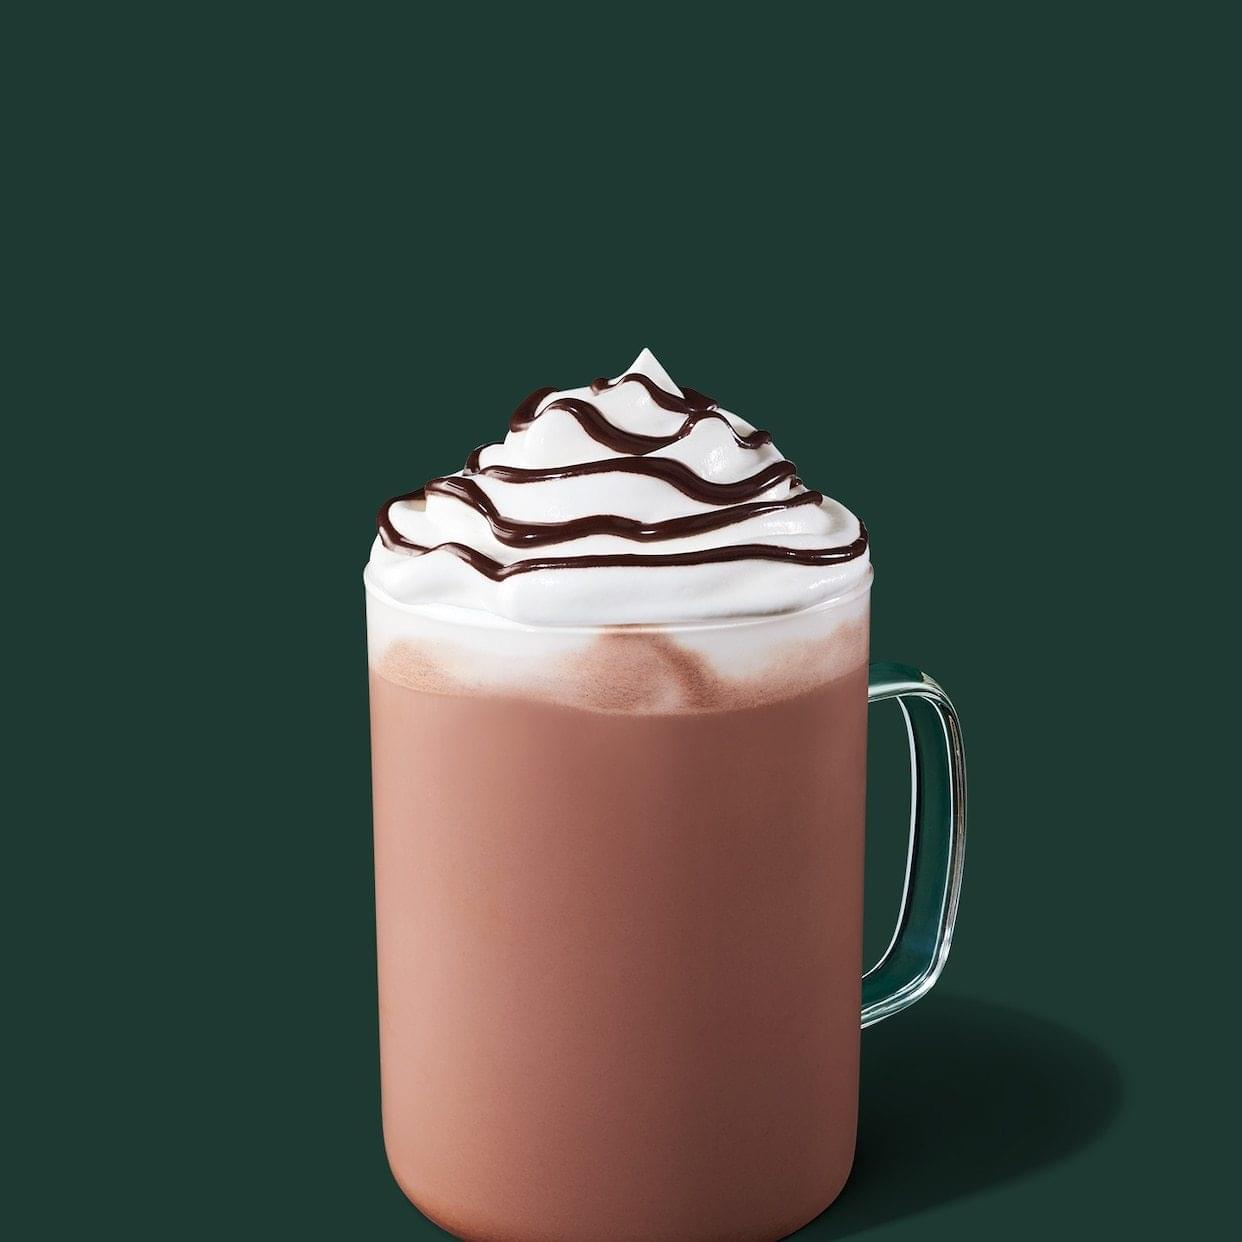 Starbucks Hot Chocolate Nutrition Facts